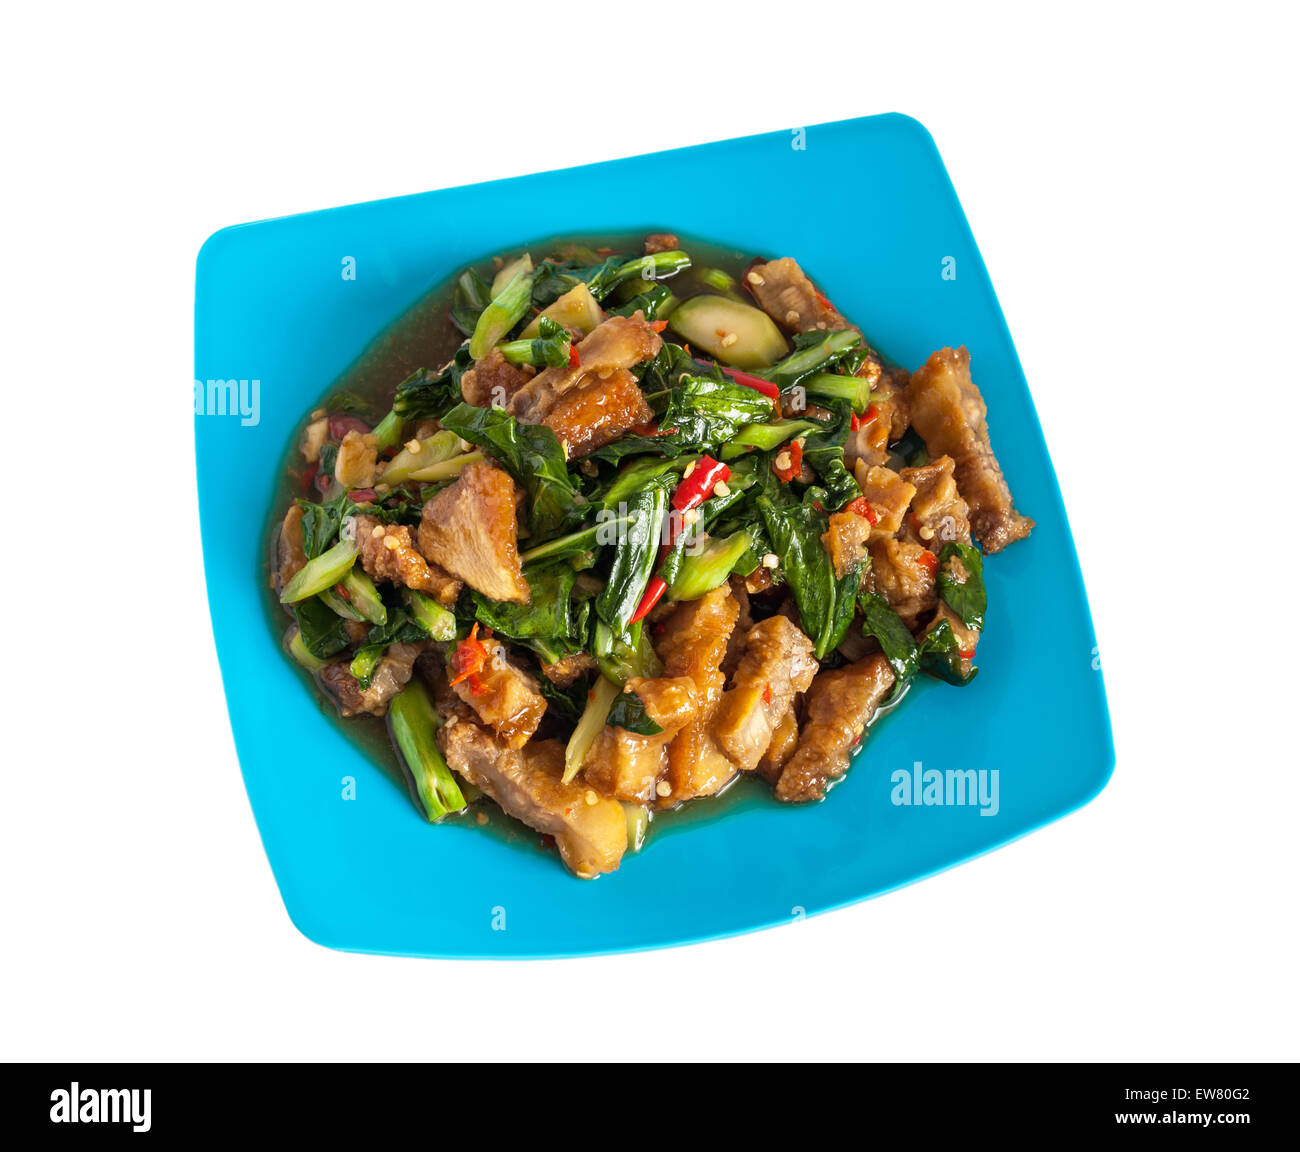 Stir Fried Kale Crispy Pork Stock Photos & Stir Fried Kale Crispy